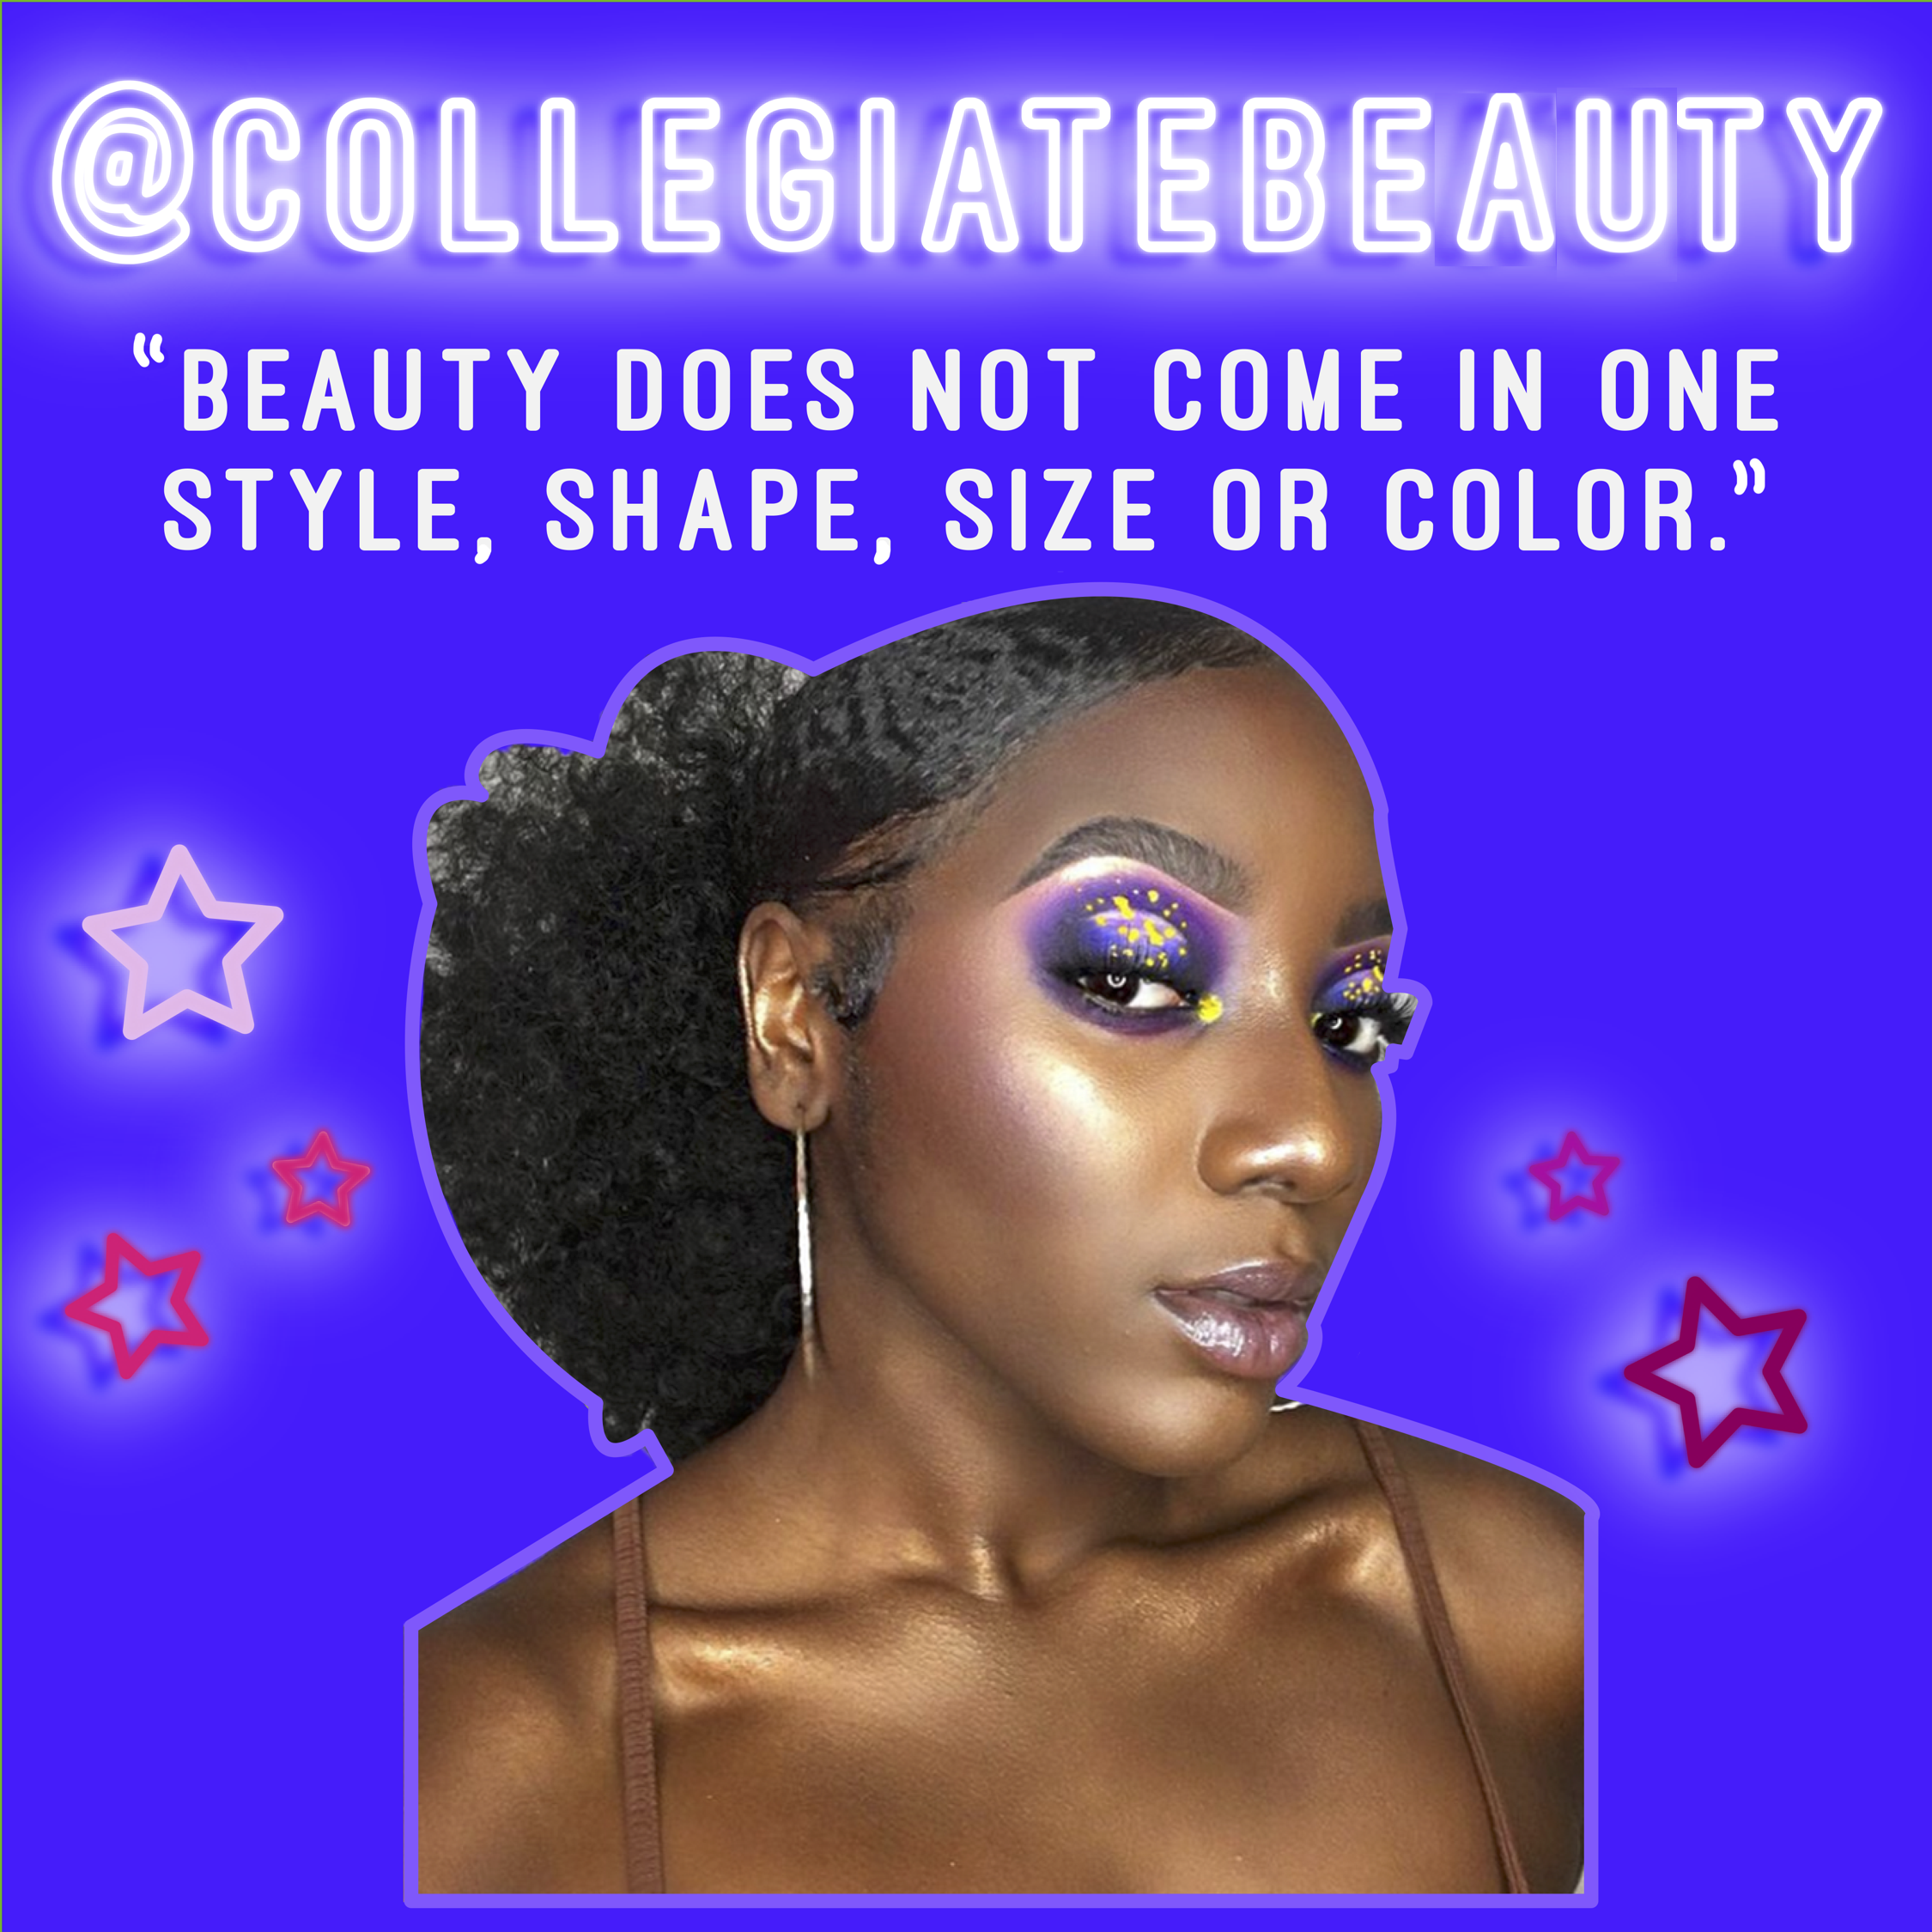 """""""Growing up, I wish I would have known that the European standard of beauty wasn't necessarily the right one or the only one...As the years have passed, I've come to learn the detrimental effects this marginalization can have on many women of color, including myself- I lost my identity for a while. Now, I've adopted a strong mentality in understanding that beauty does not just come in one style, shape, size or color, rather it is the most subjective, personal and unique quality we each possess."""" -@ Collegiatebeauty"""